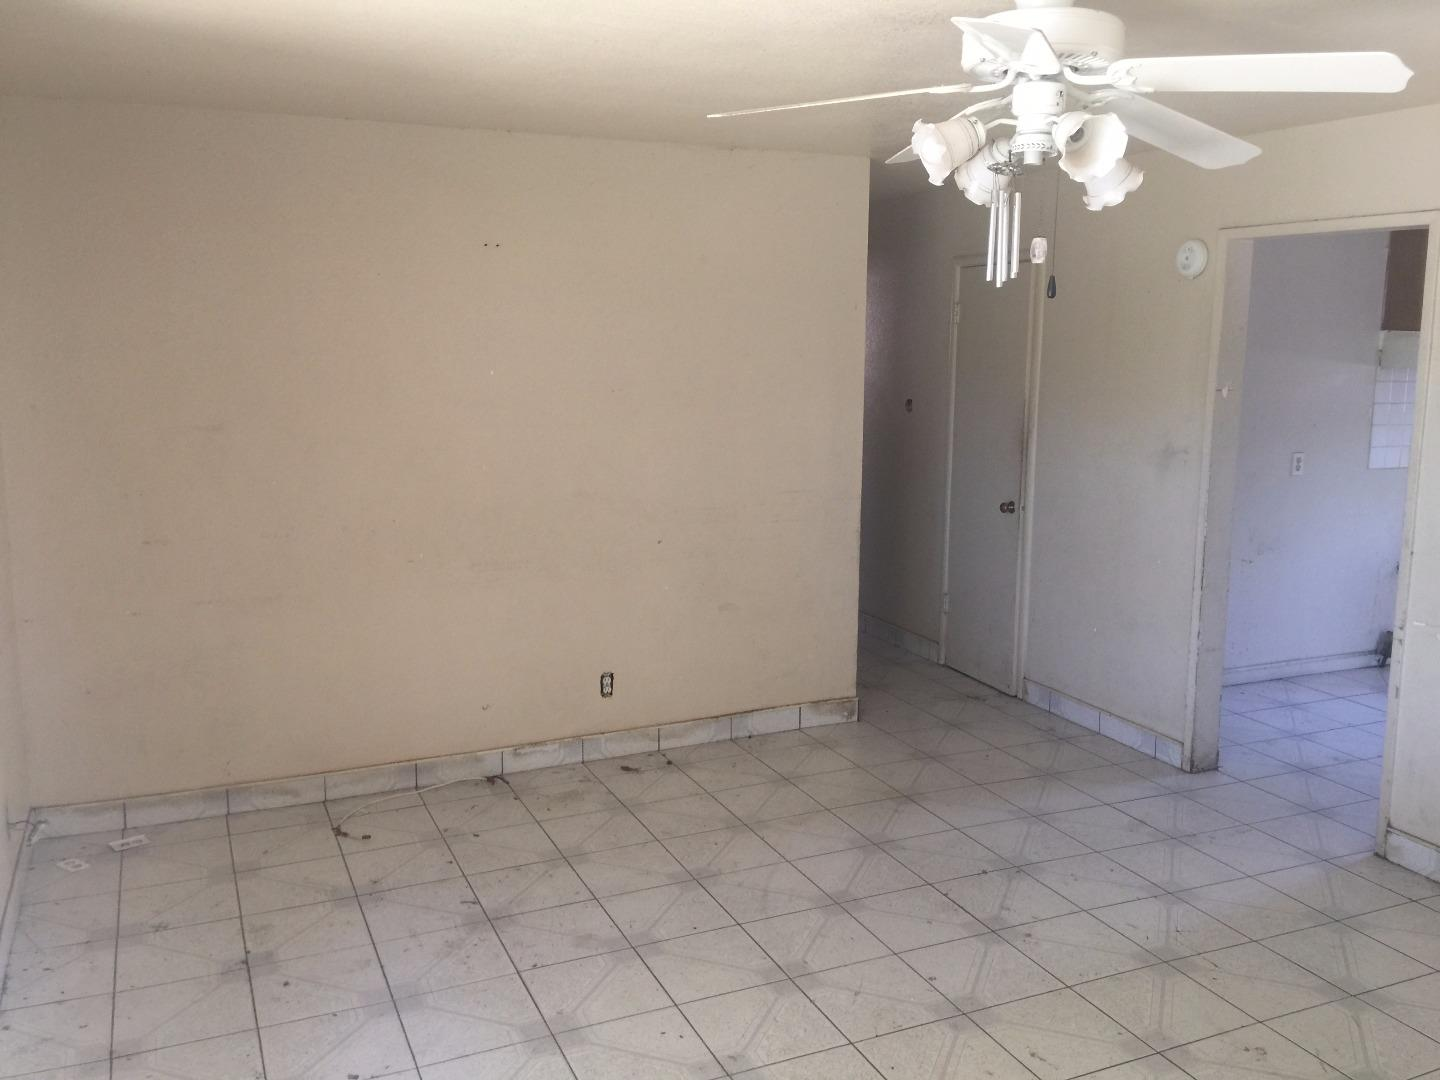 Additional photo for property listing at 483 Sebasian Way  San Jose, Kalifornien 95111 Vereinigte Staaten